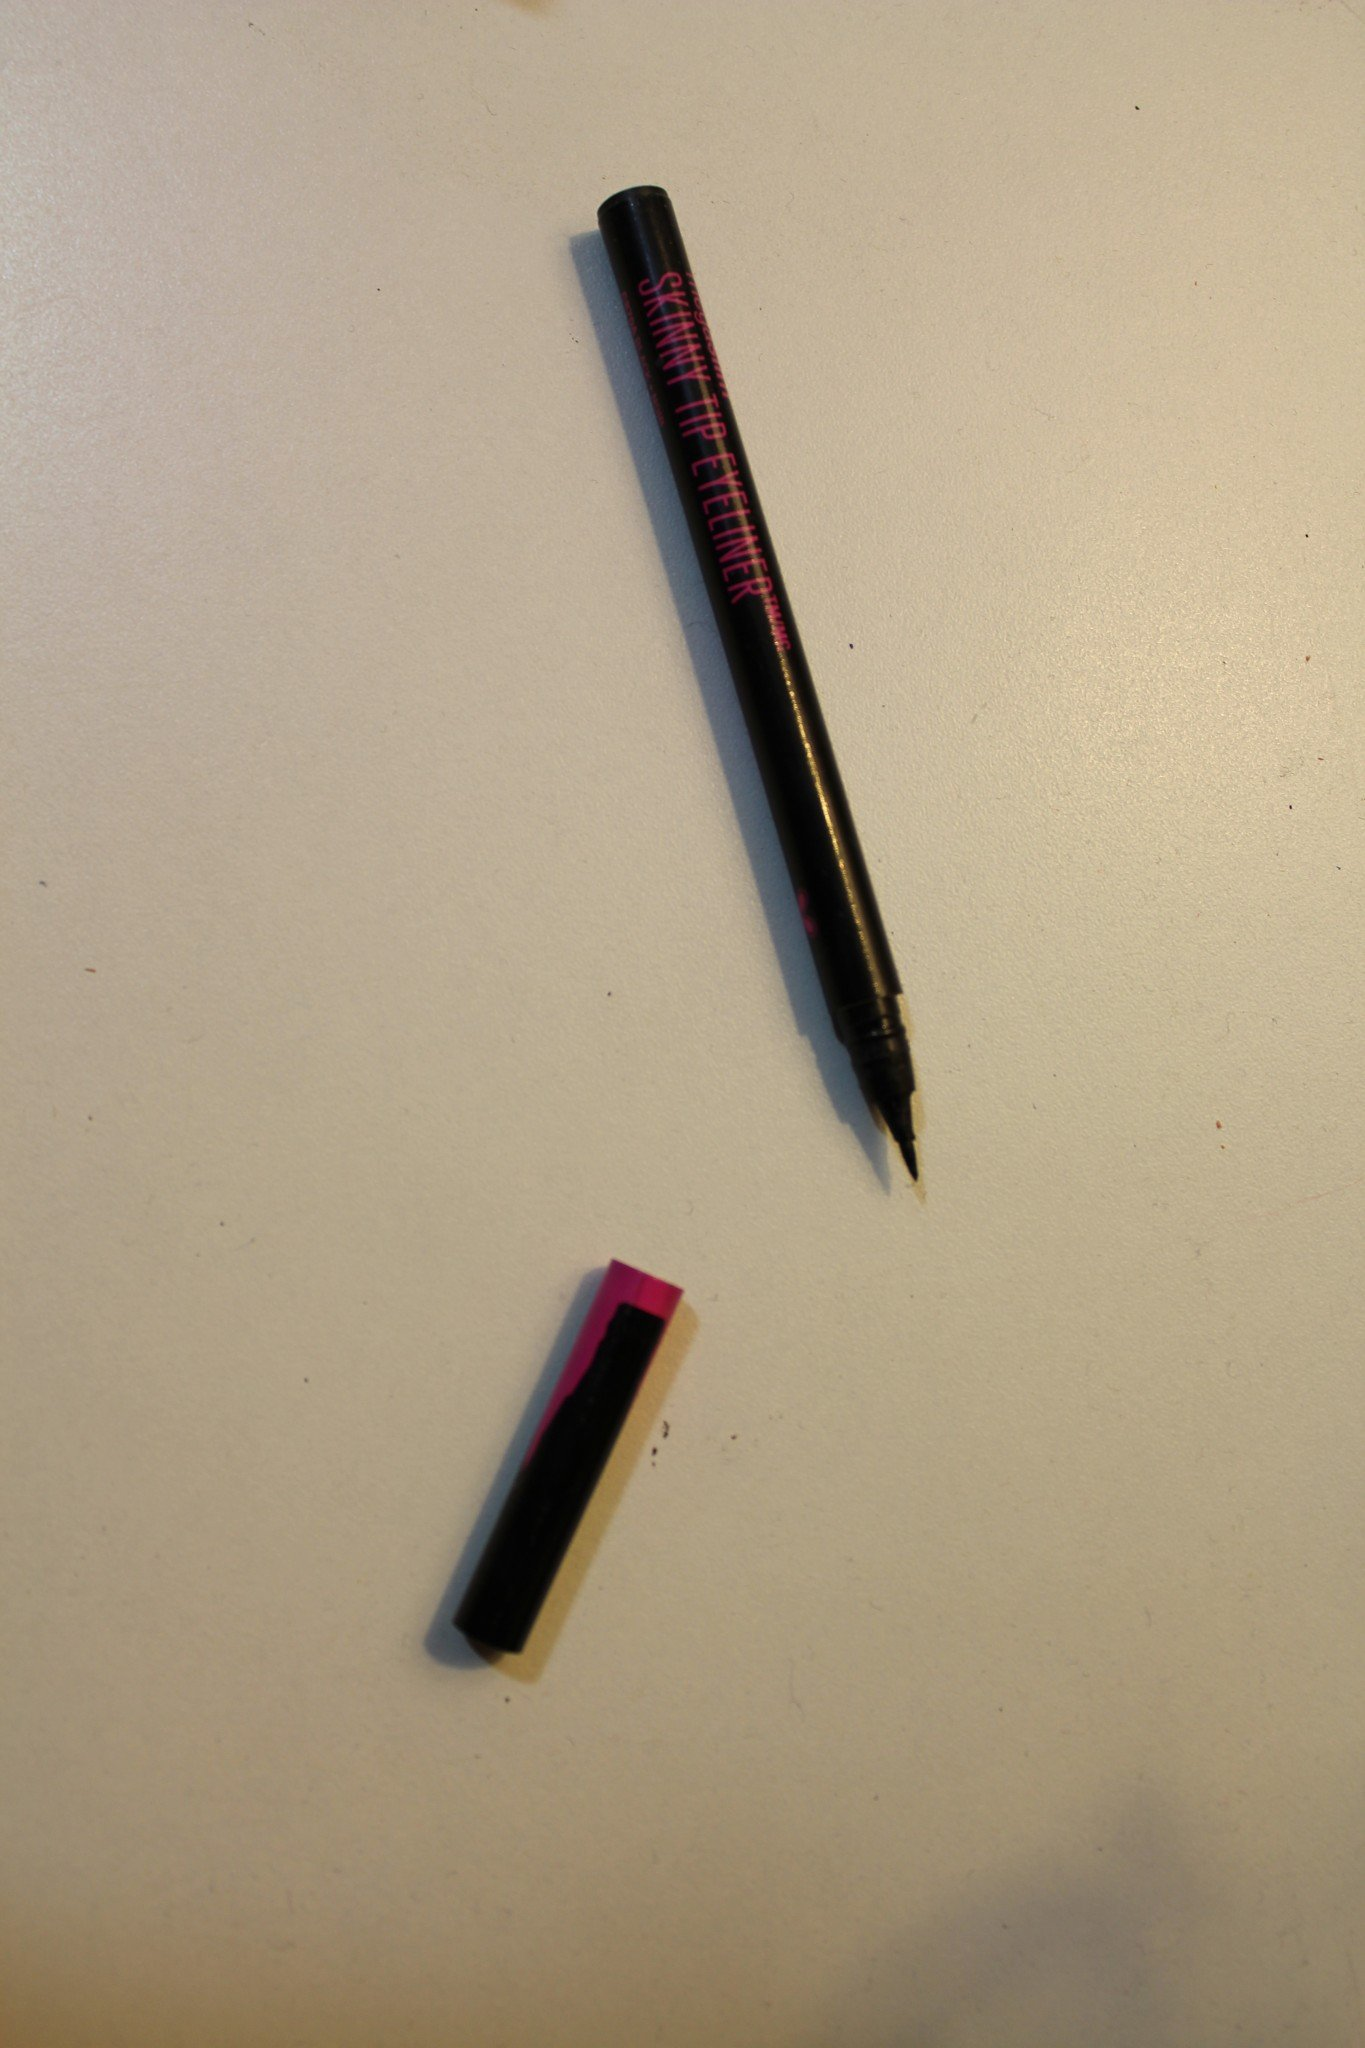 The Face Of Style - May Favorites: Wet and Wild MegaSlim Skinny Tip Eyeliner